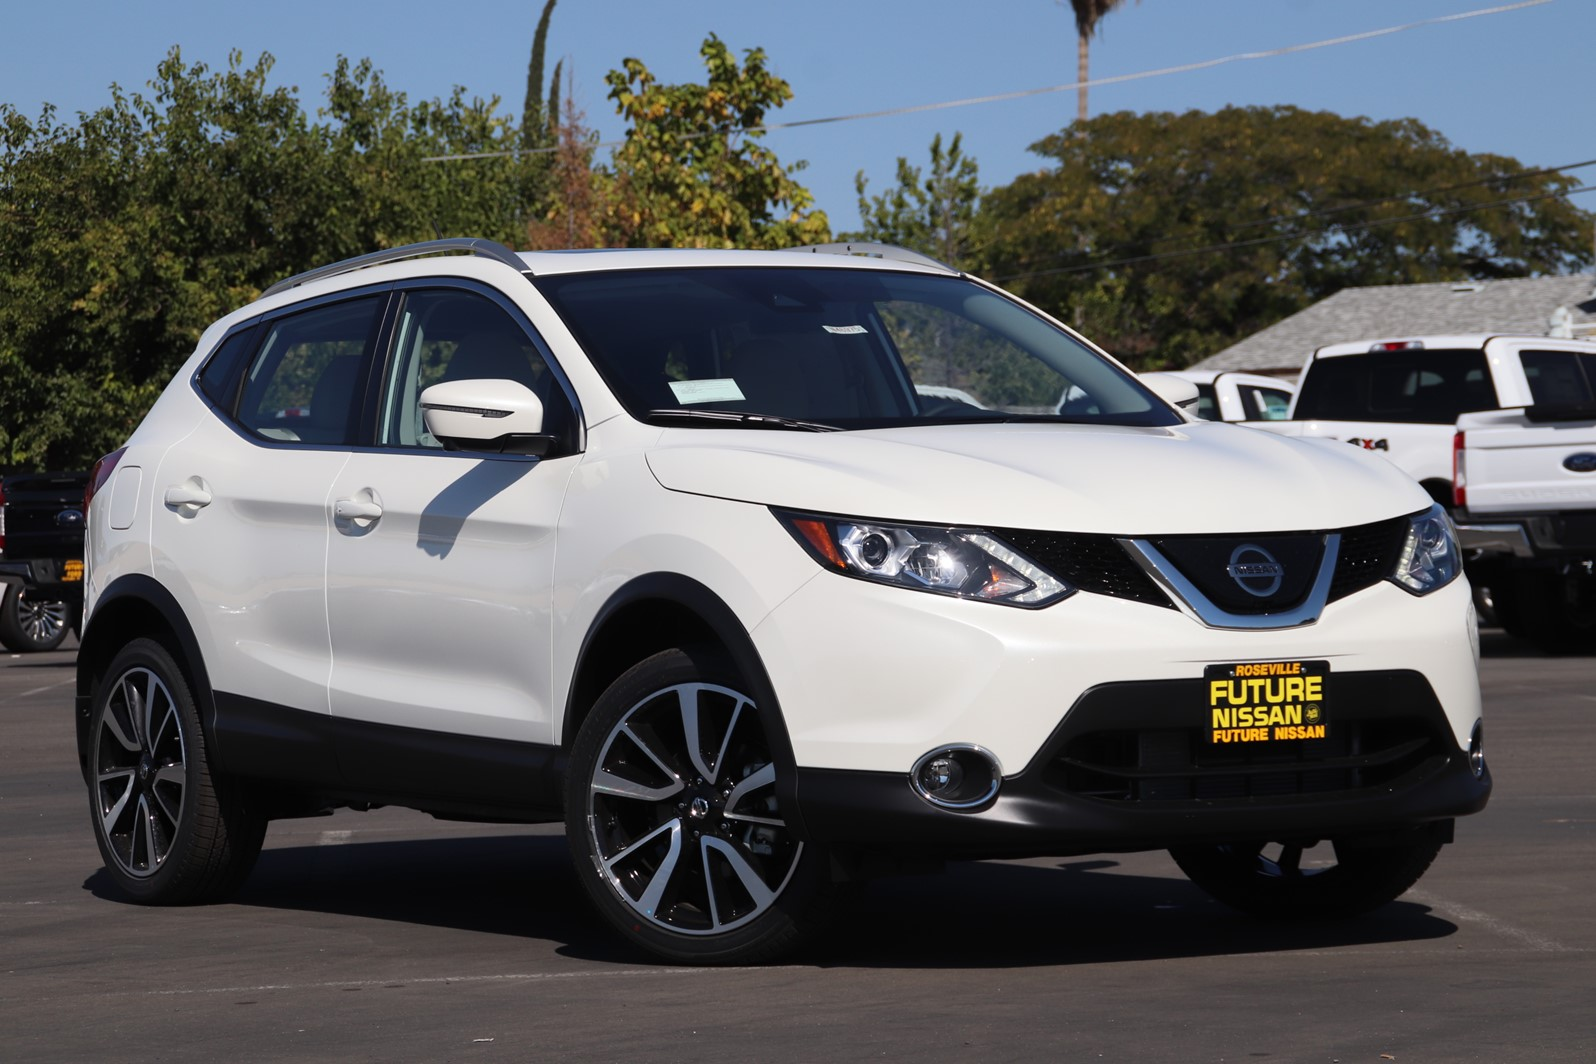 Nissan Rogue Service Manual: Inspection and adjustment